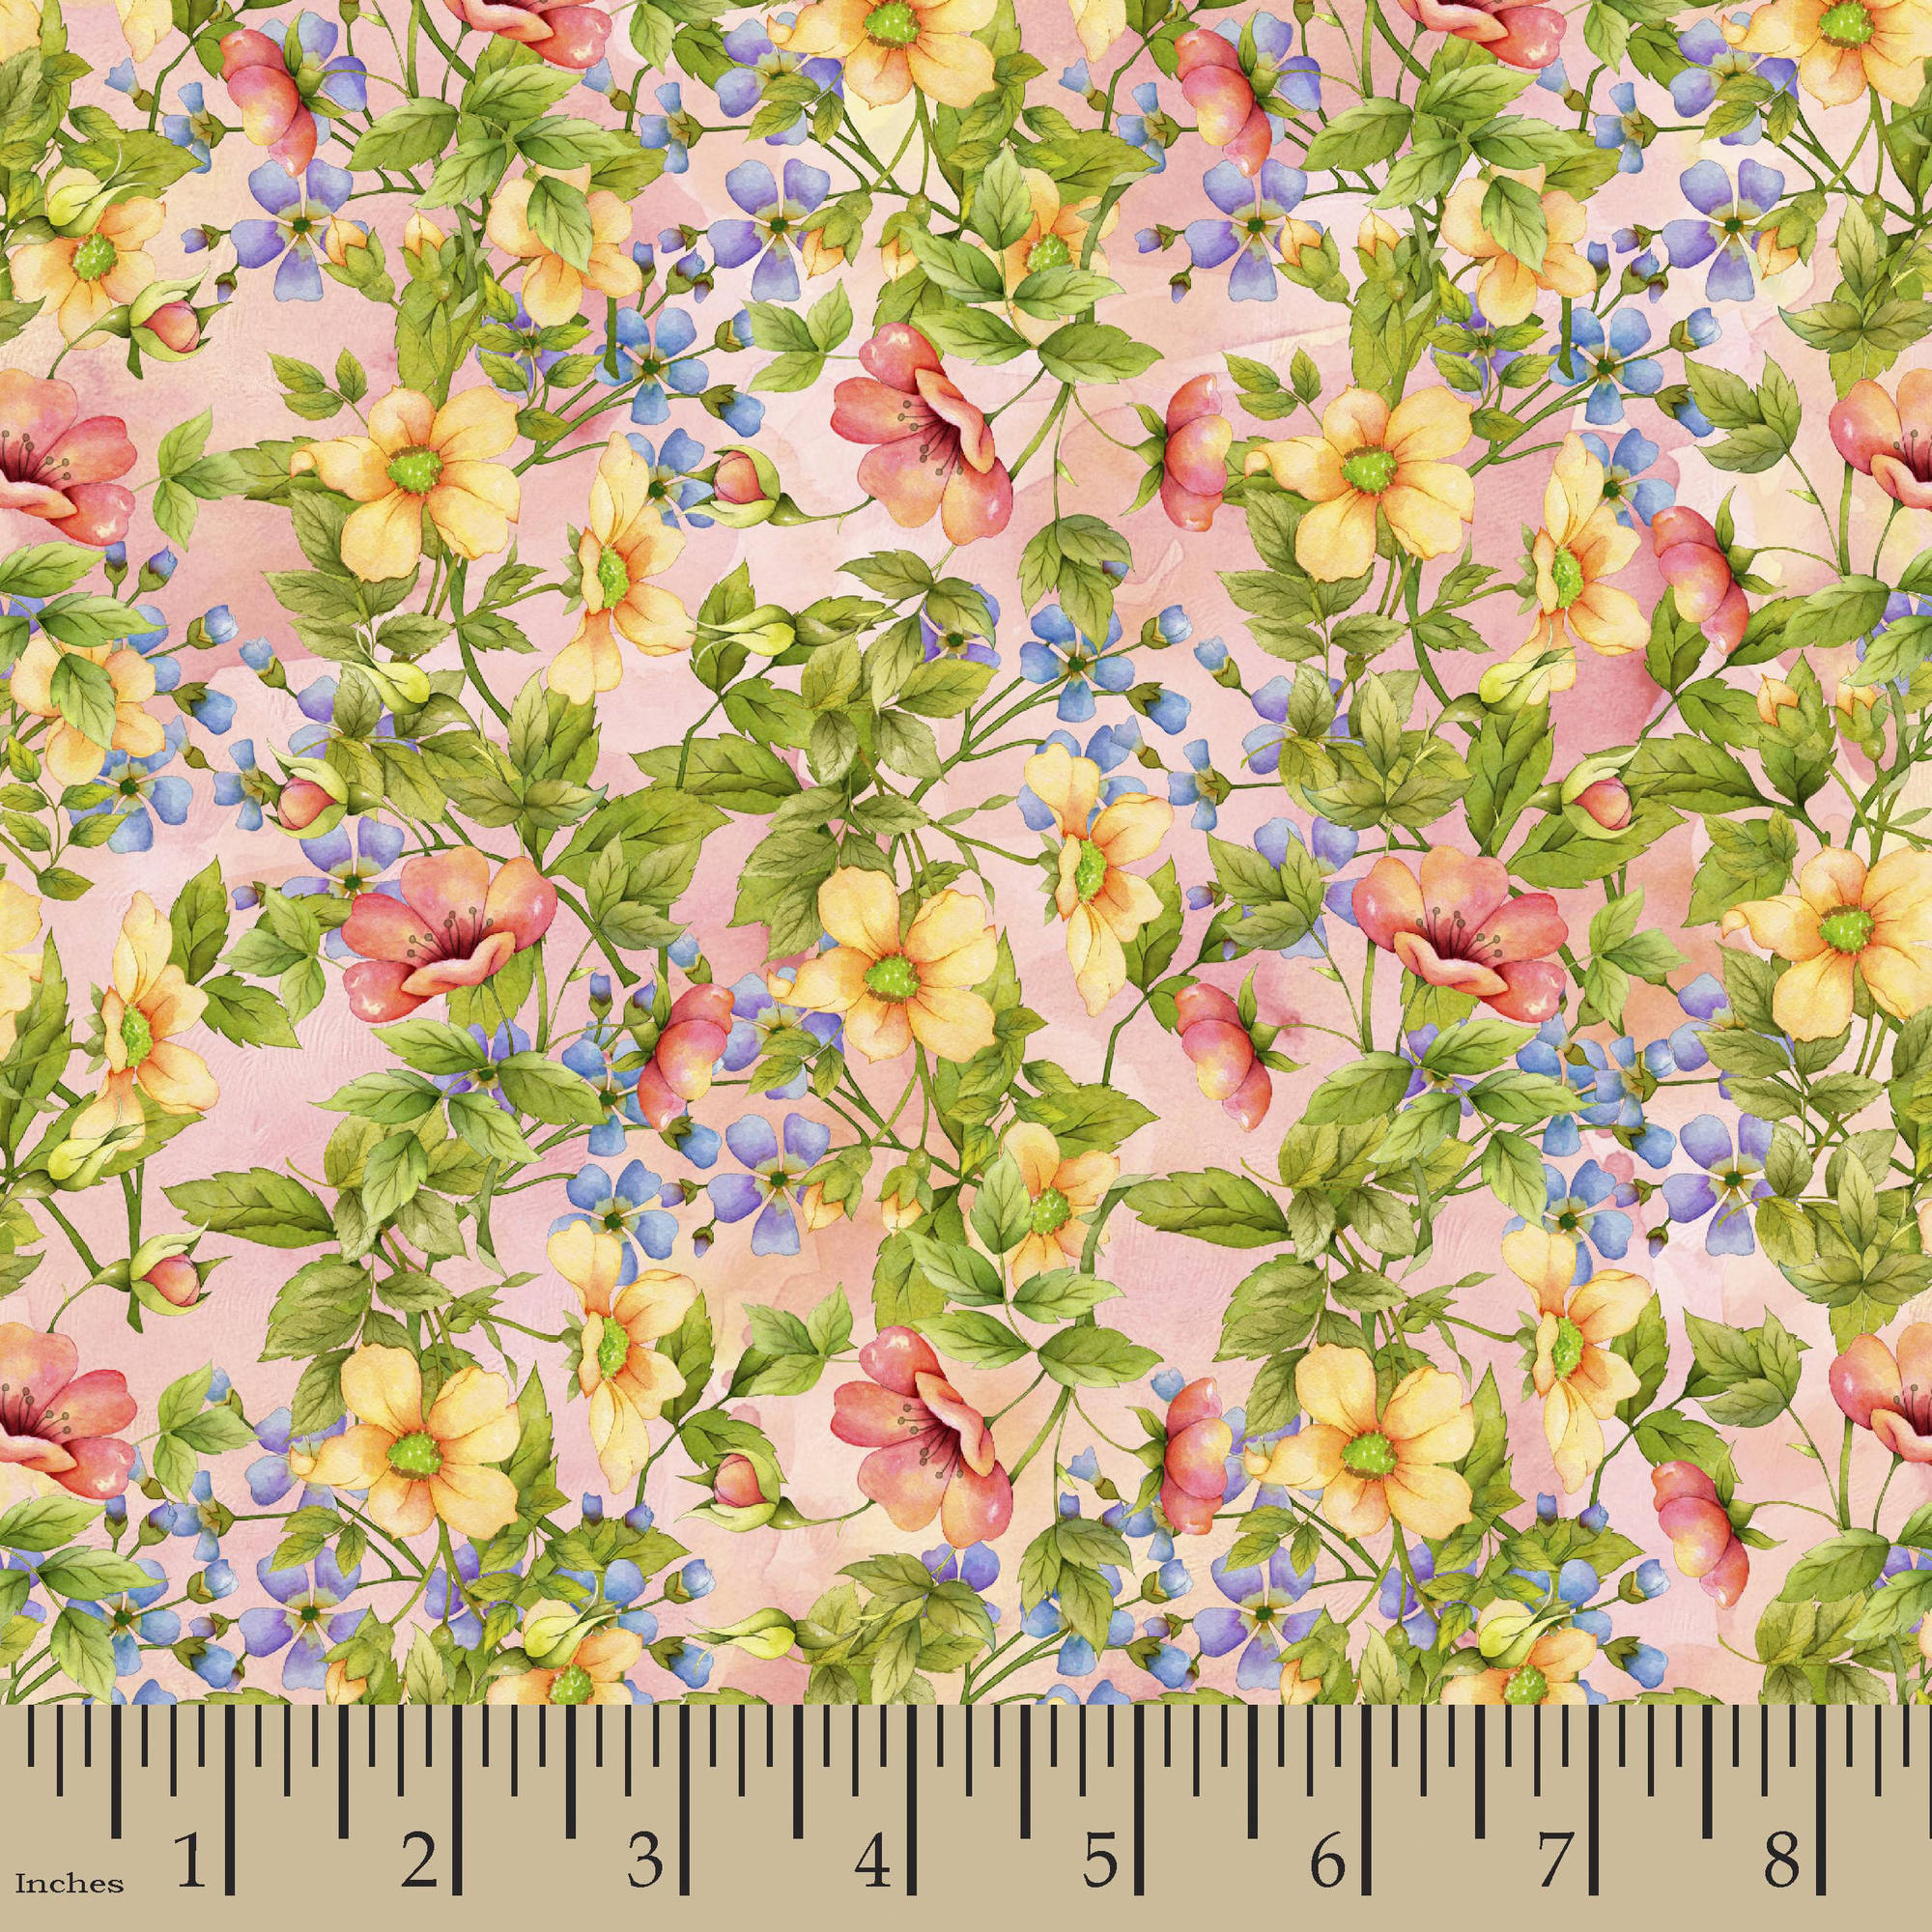 "Blessed Sanctum Floral Garden Fabric by the Yard, Pink, 43/44"" Width"